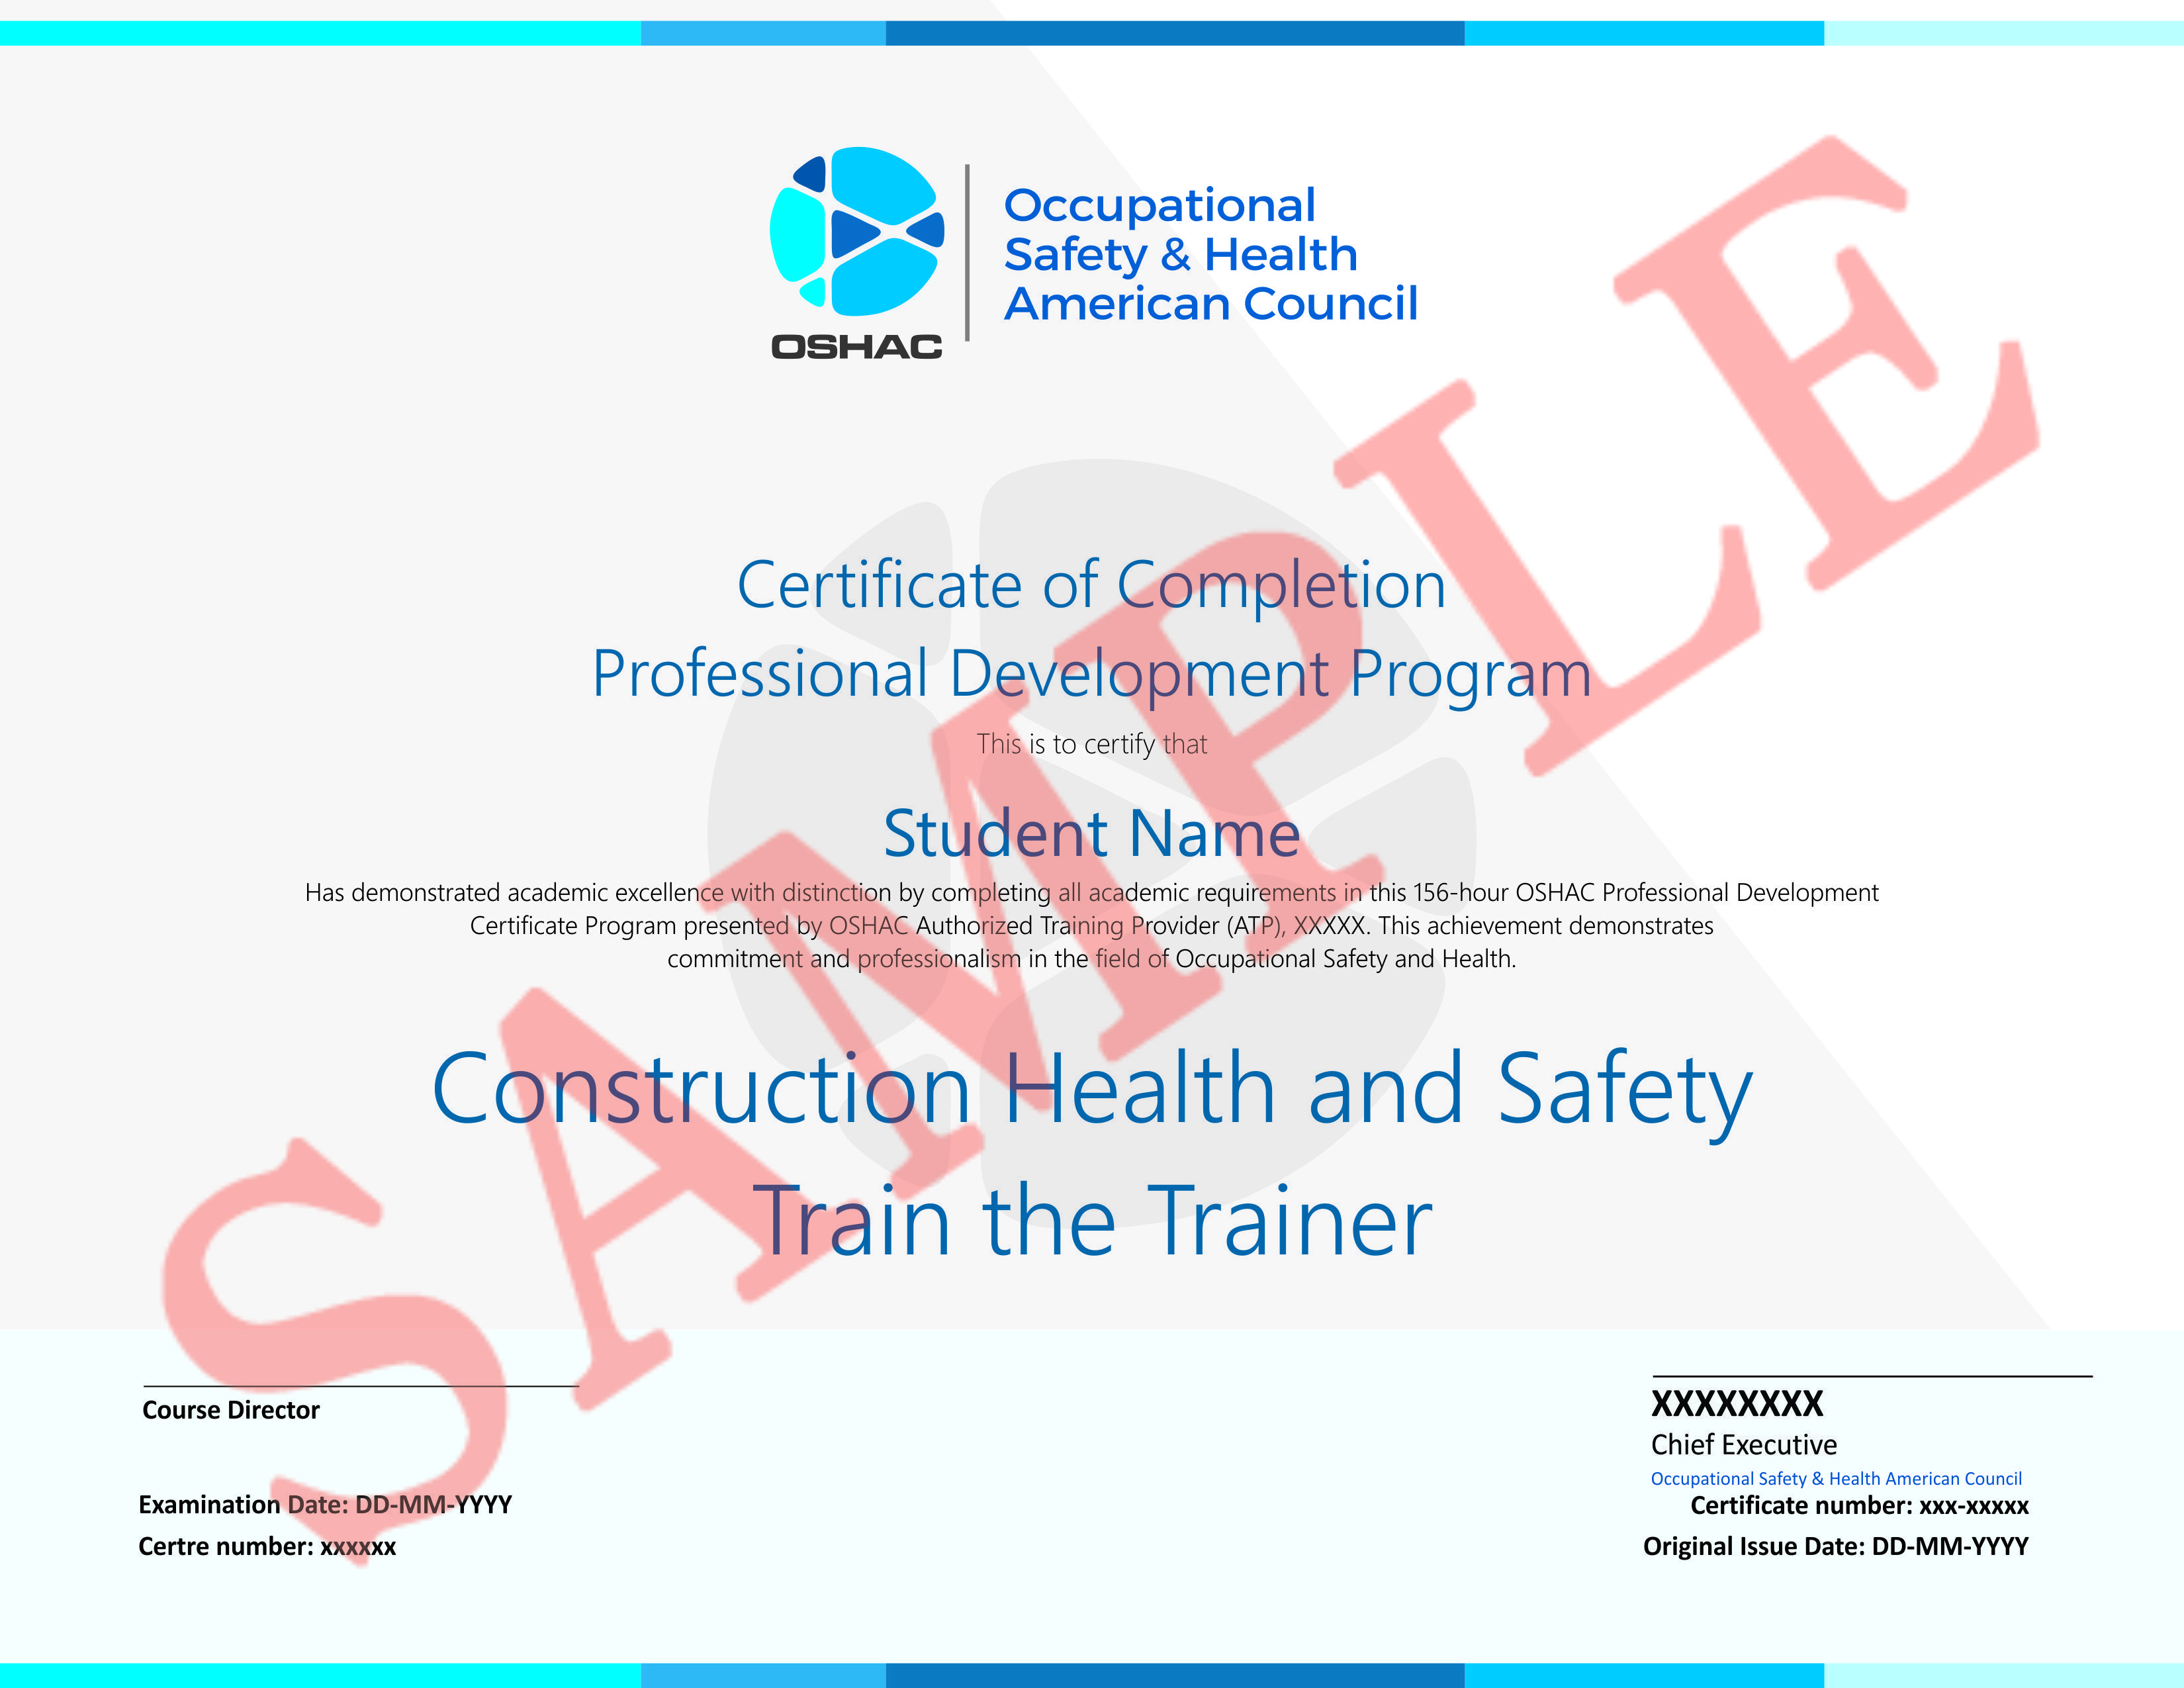 Introduction Occupational Safety and Health American